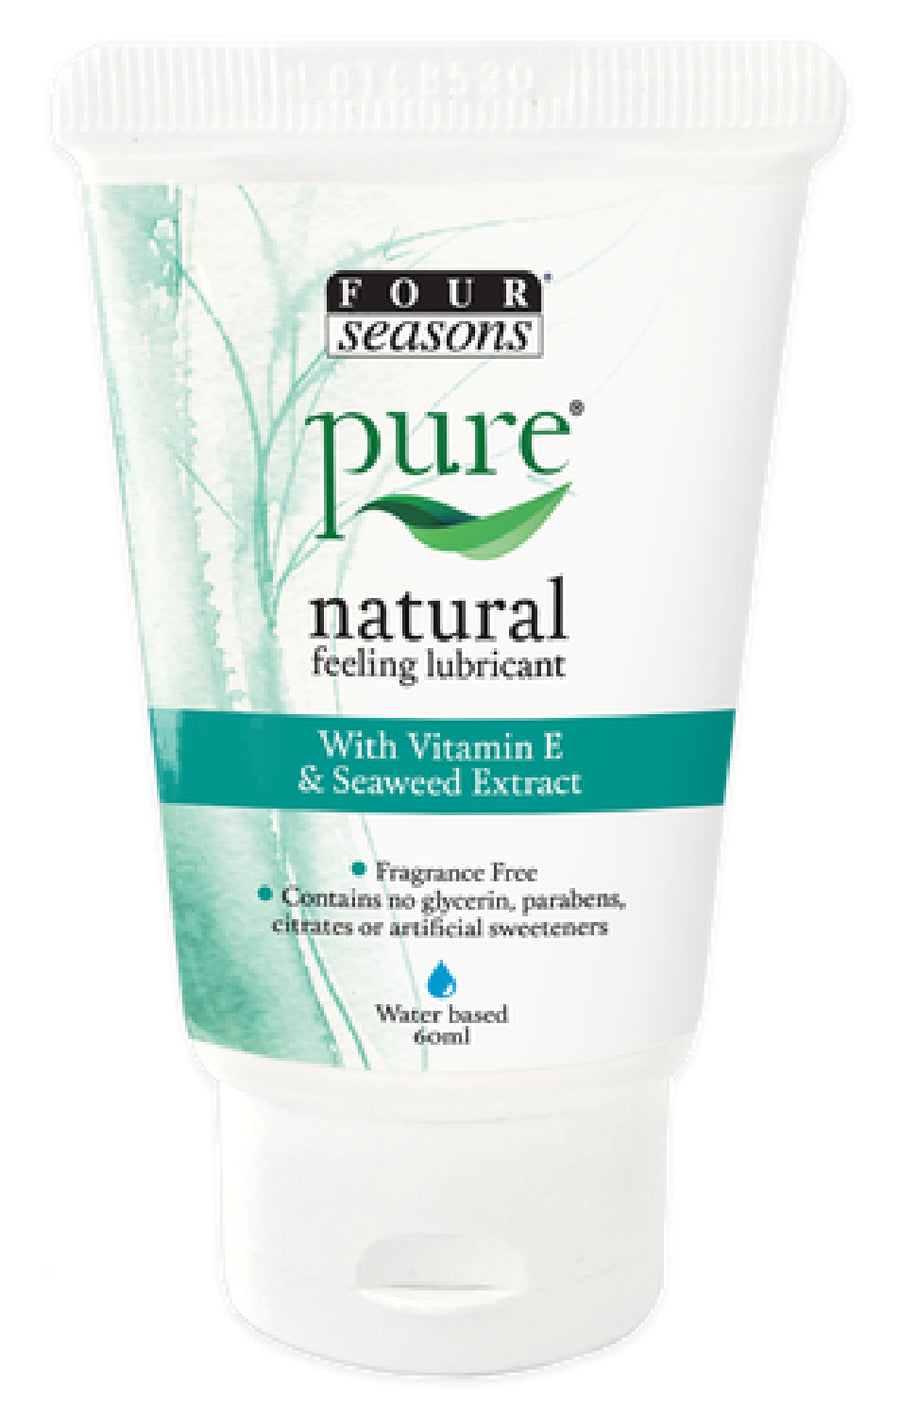 PURE Natural Feeling Lubricant - Four Seasons - Lubricants & Massage - purpleboxau